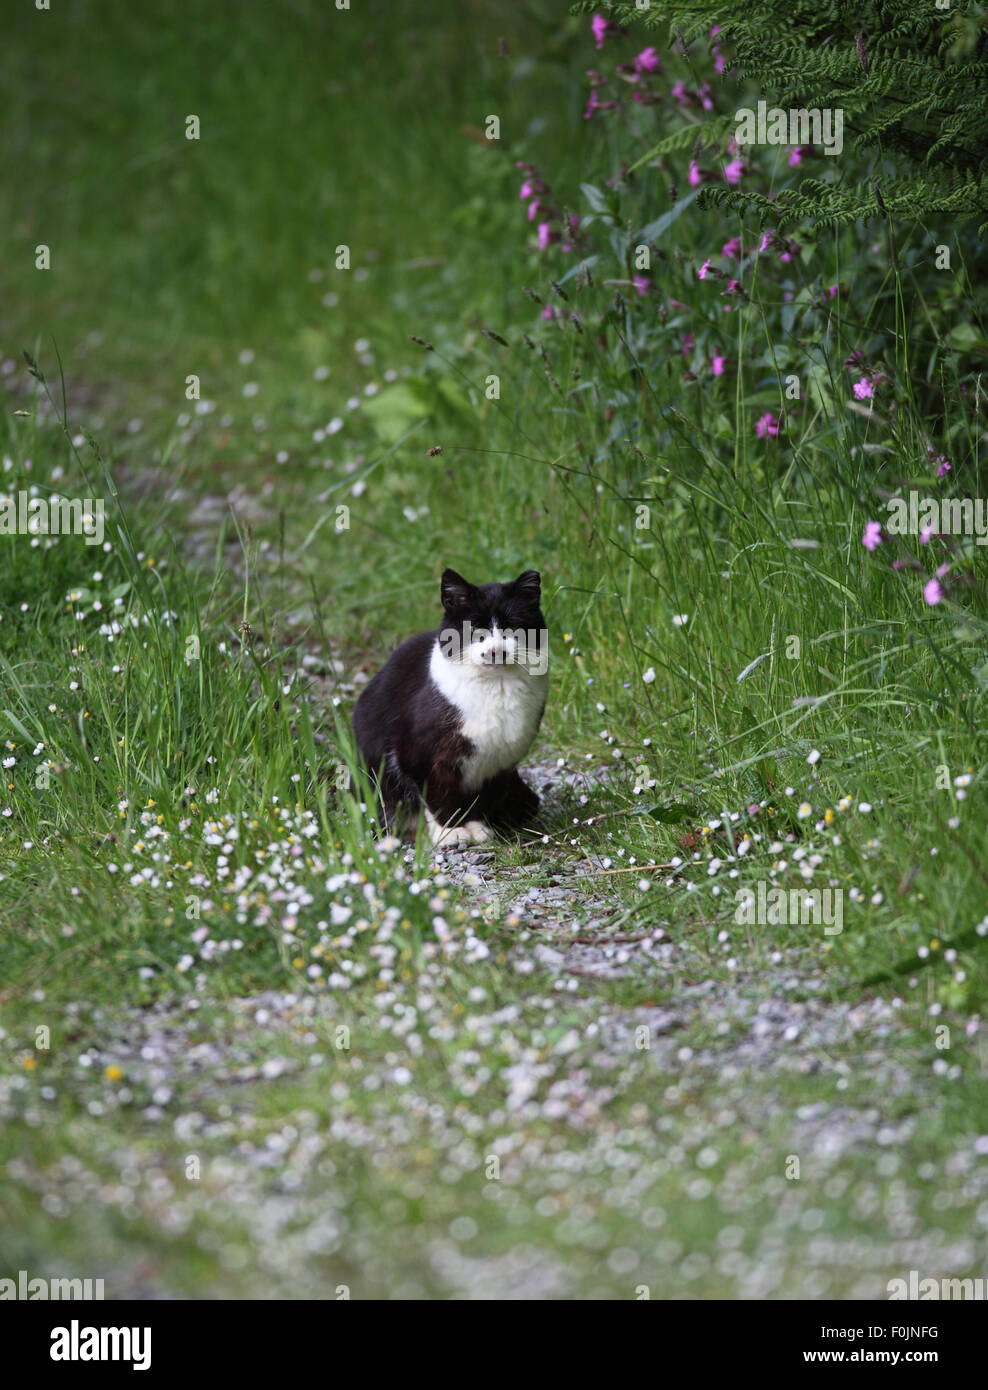 Domestic cat feral siting on path amongst summer flowers - Stock Image